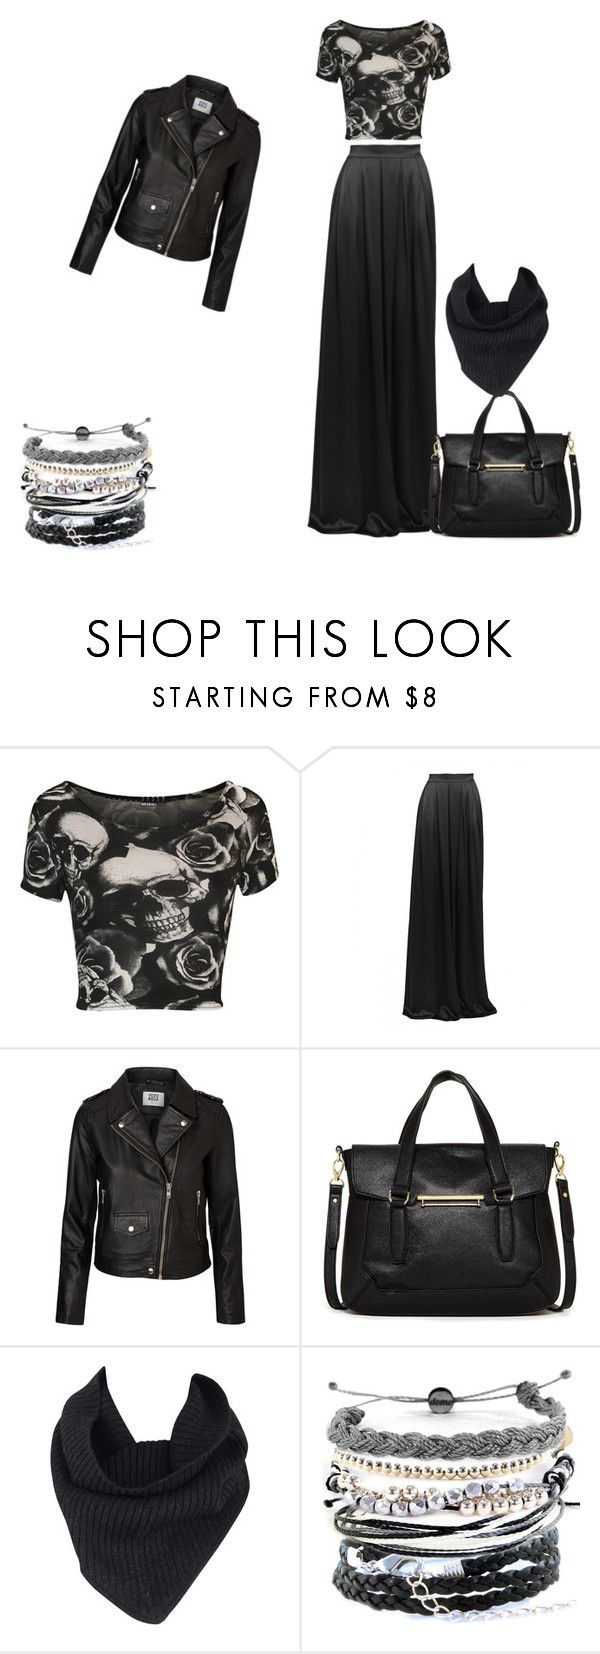 Casual witch by laebrown on Polyvore featuring moda, WearAll, Vero Moda, Matthew Williamson, Danielle Nicole, Domo Beads and A.L.C.